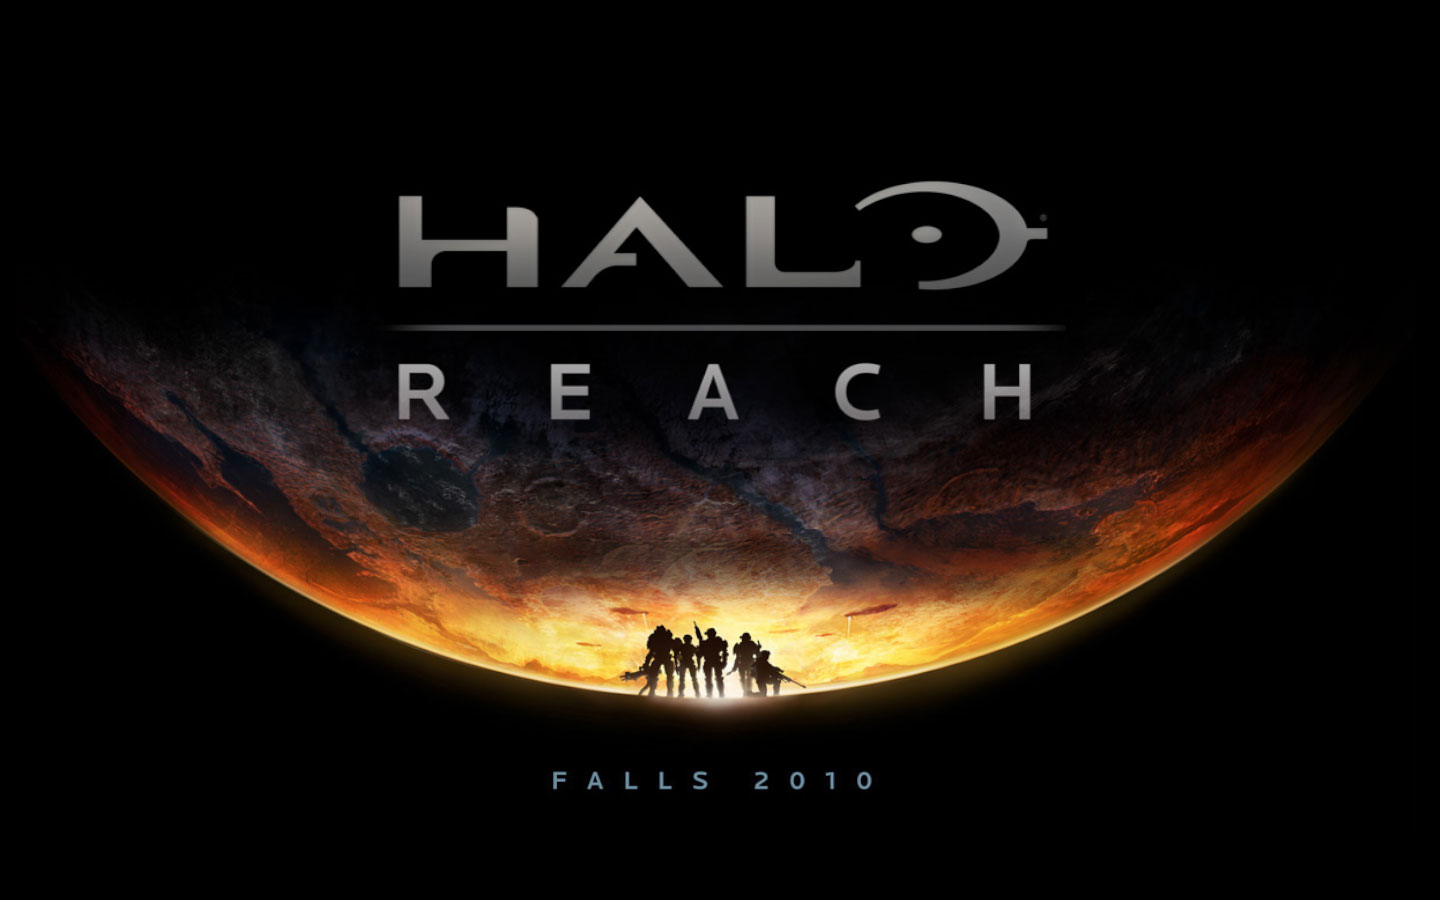 sequel Halo Reach was released two days ago 14th September 2010 1440x900